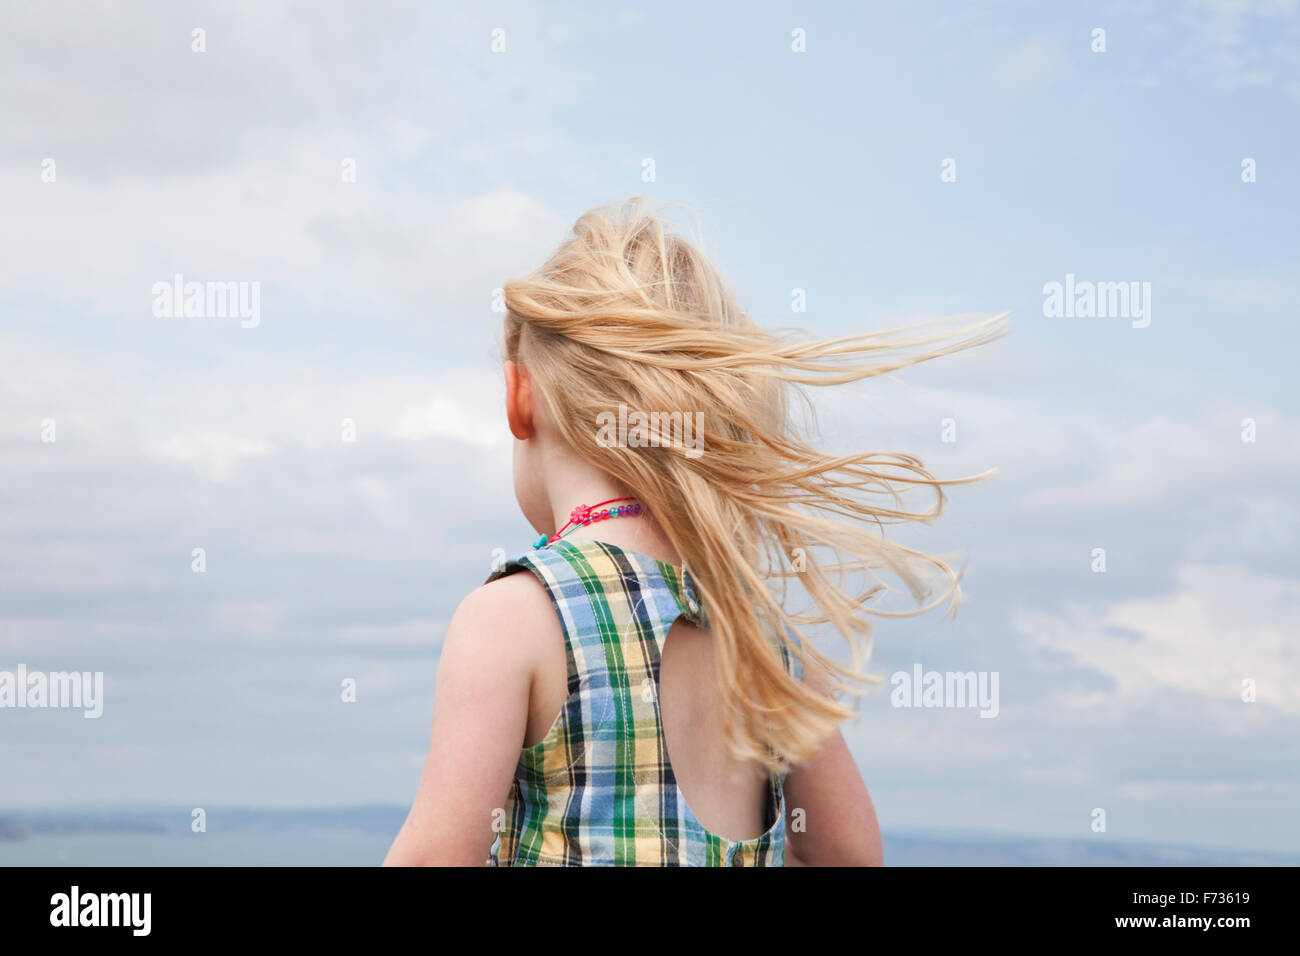 A girl with her hair blowing in the wind. - Stock Image